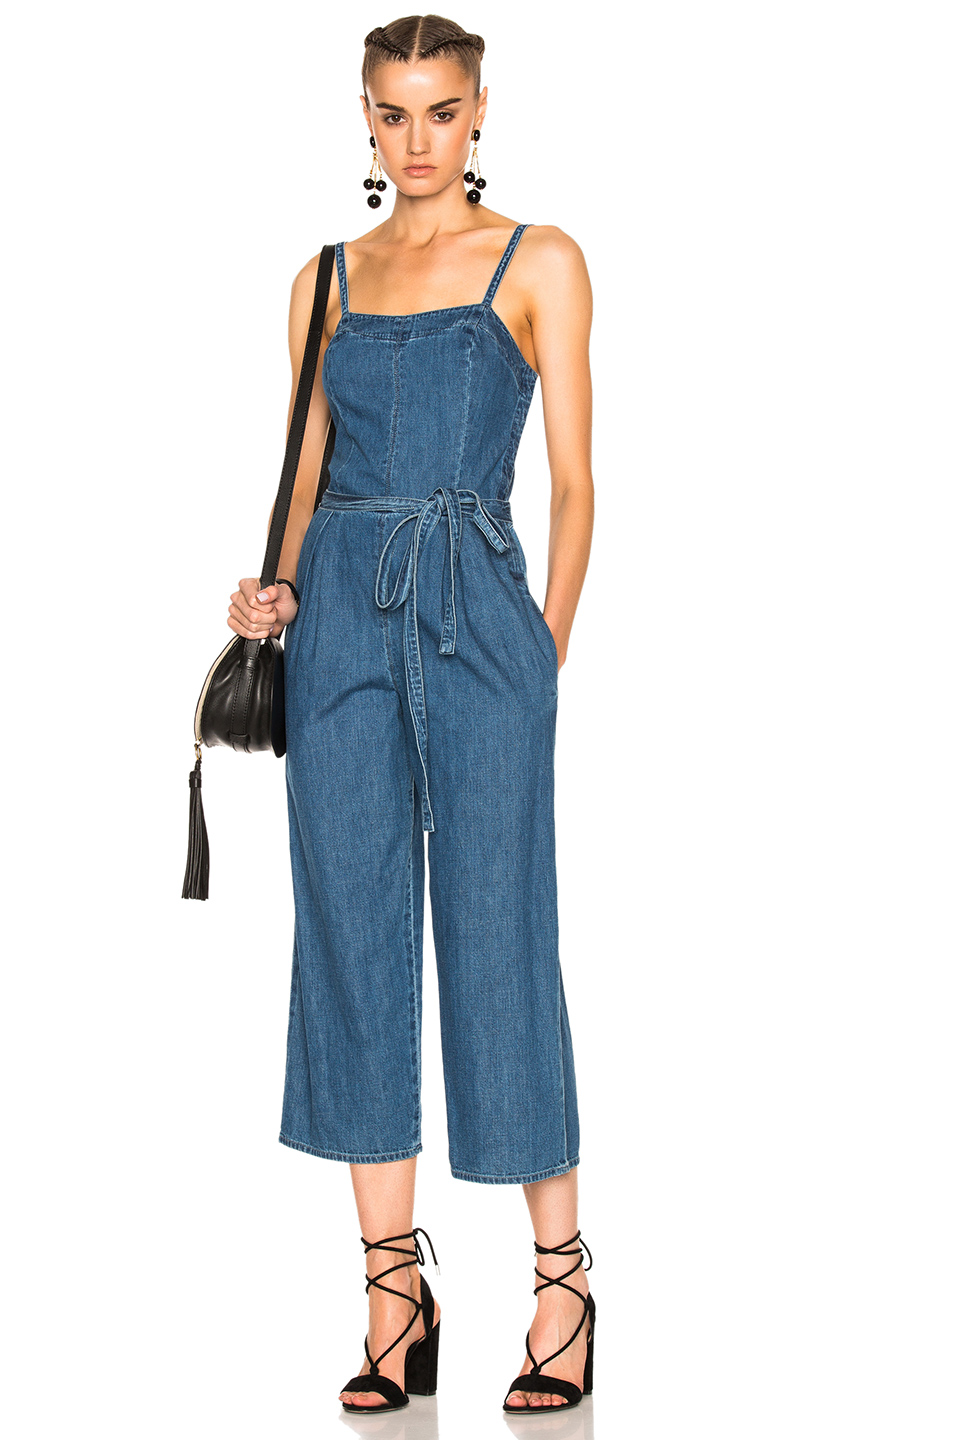 AG Adriano Goldschmied Giselle Jumpsuit in Blue